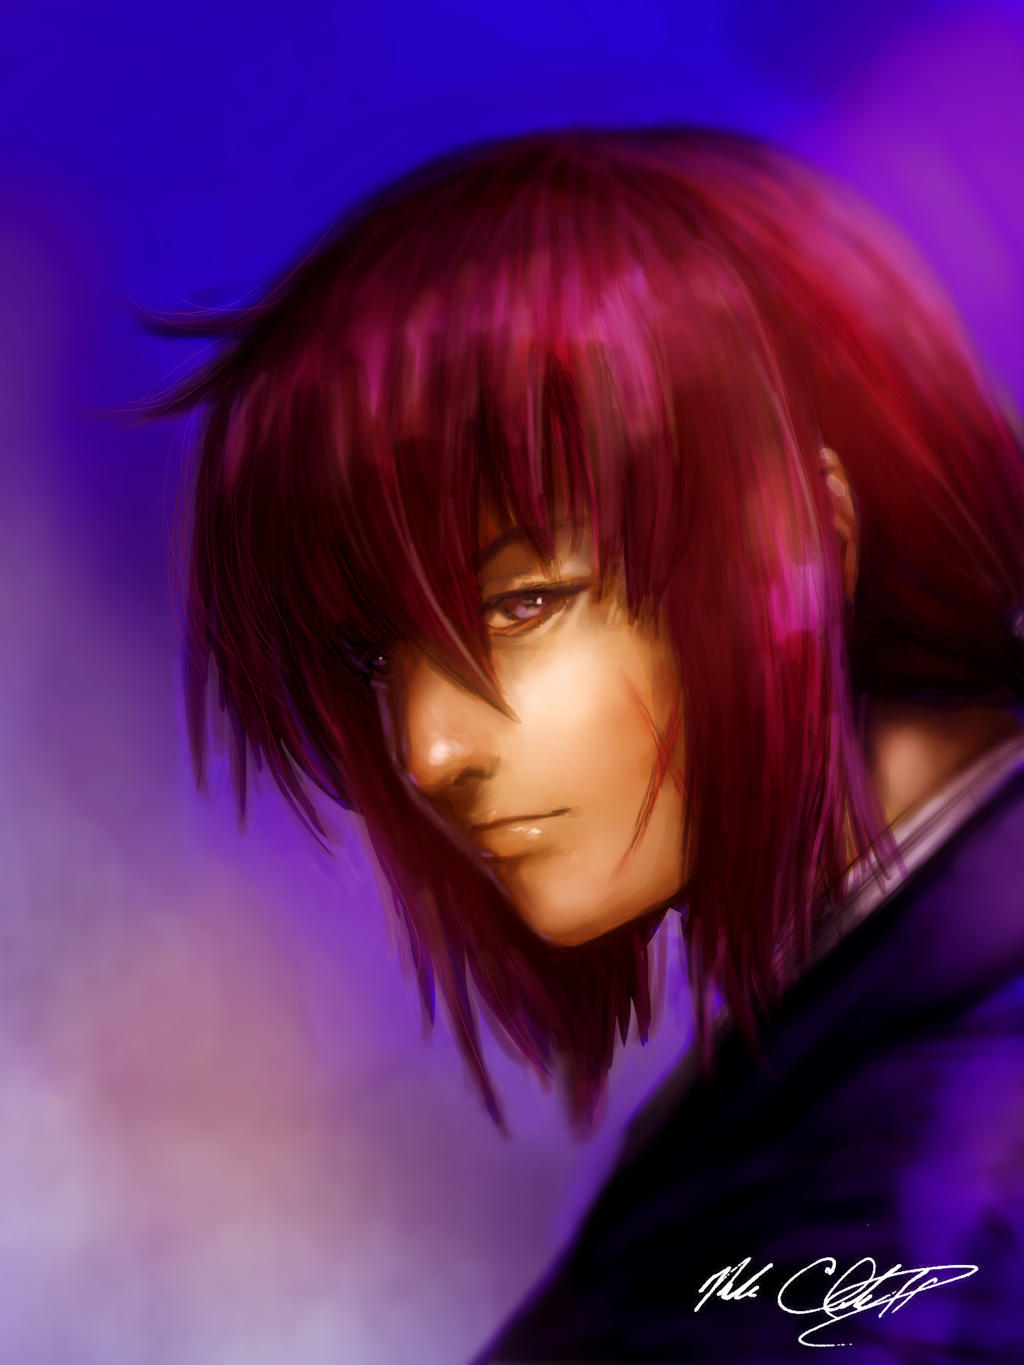 Kenshin painting by Mark-Clark-II